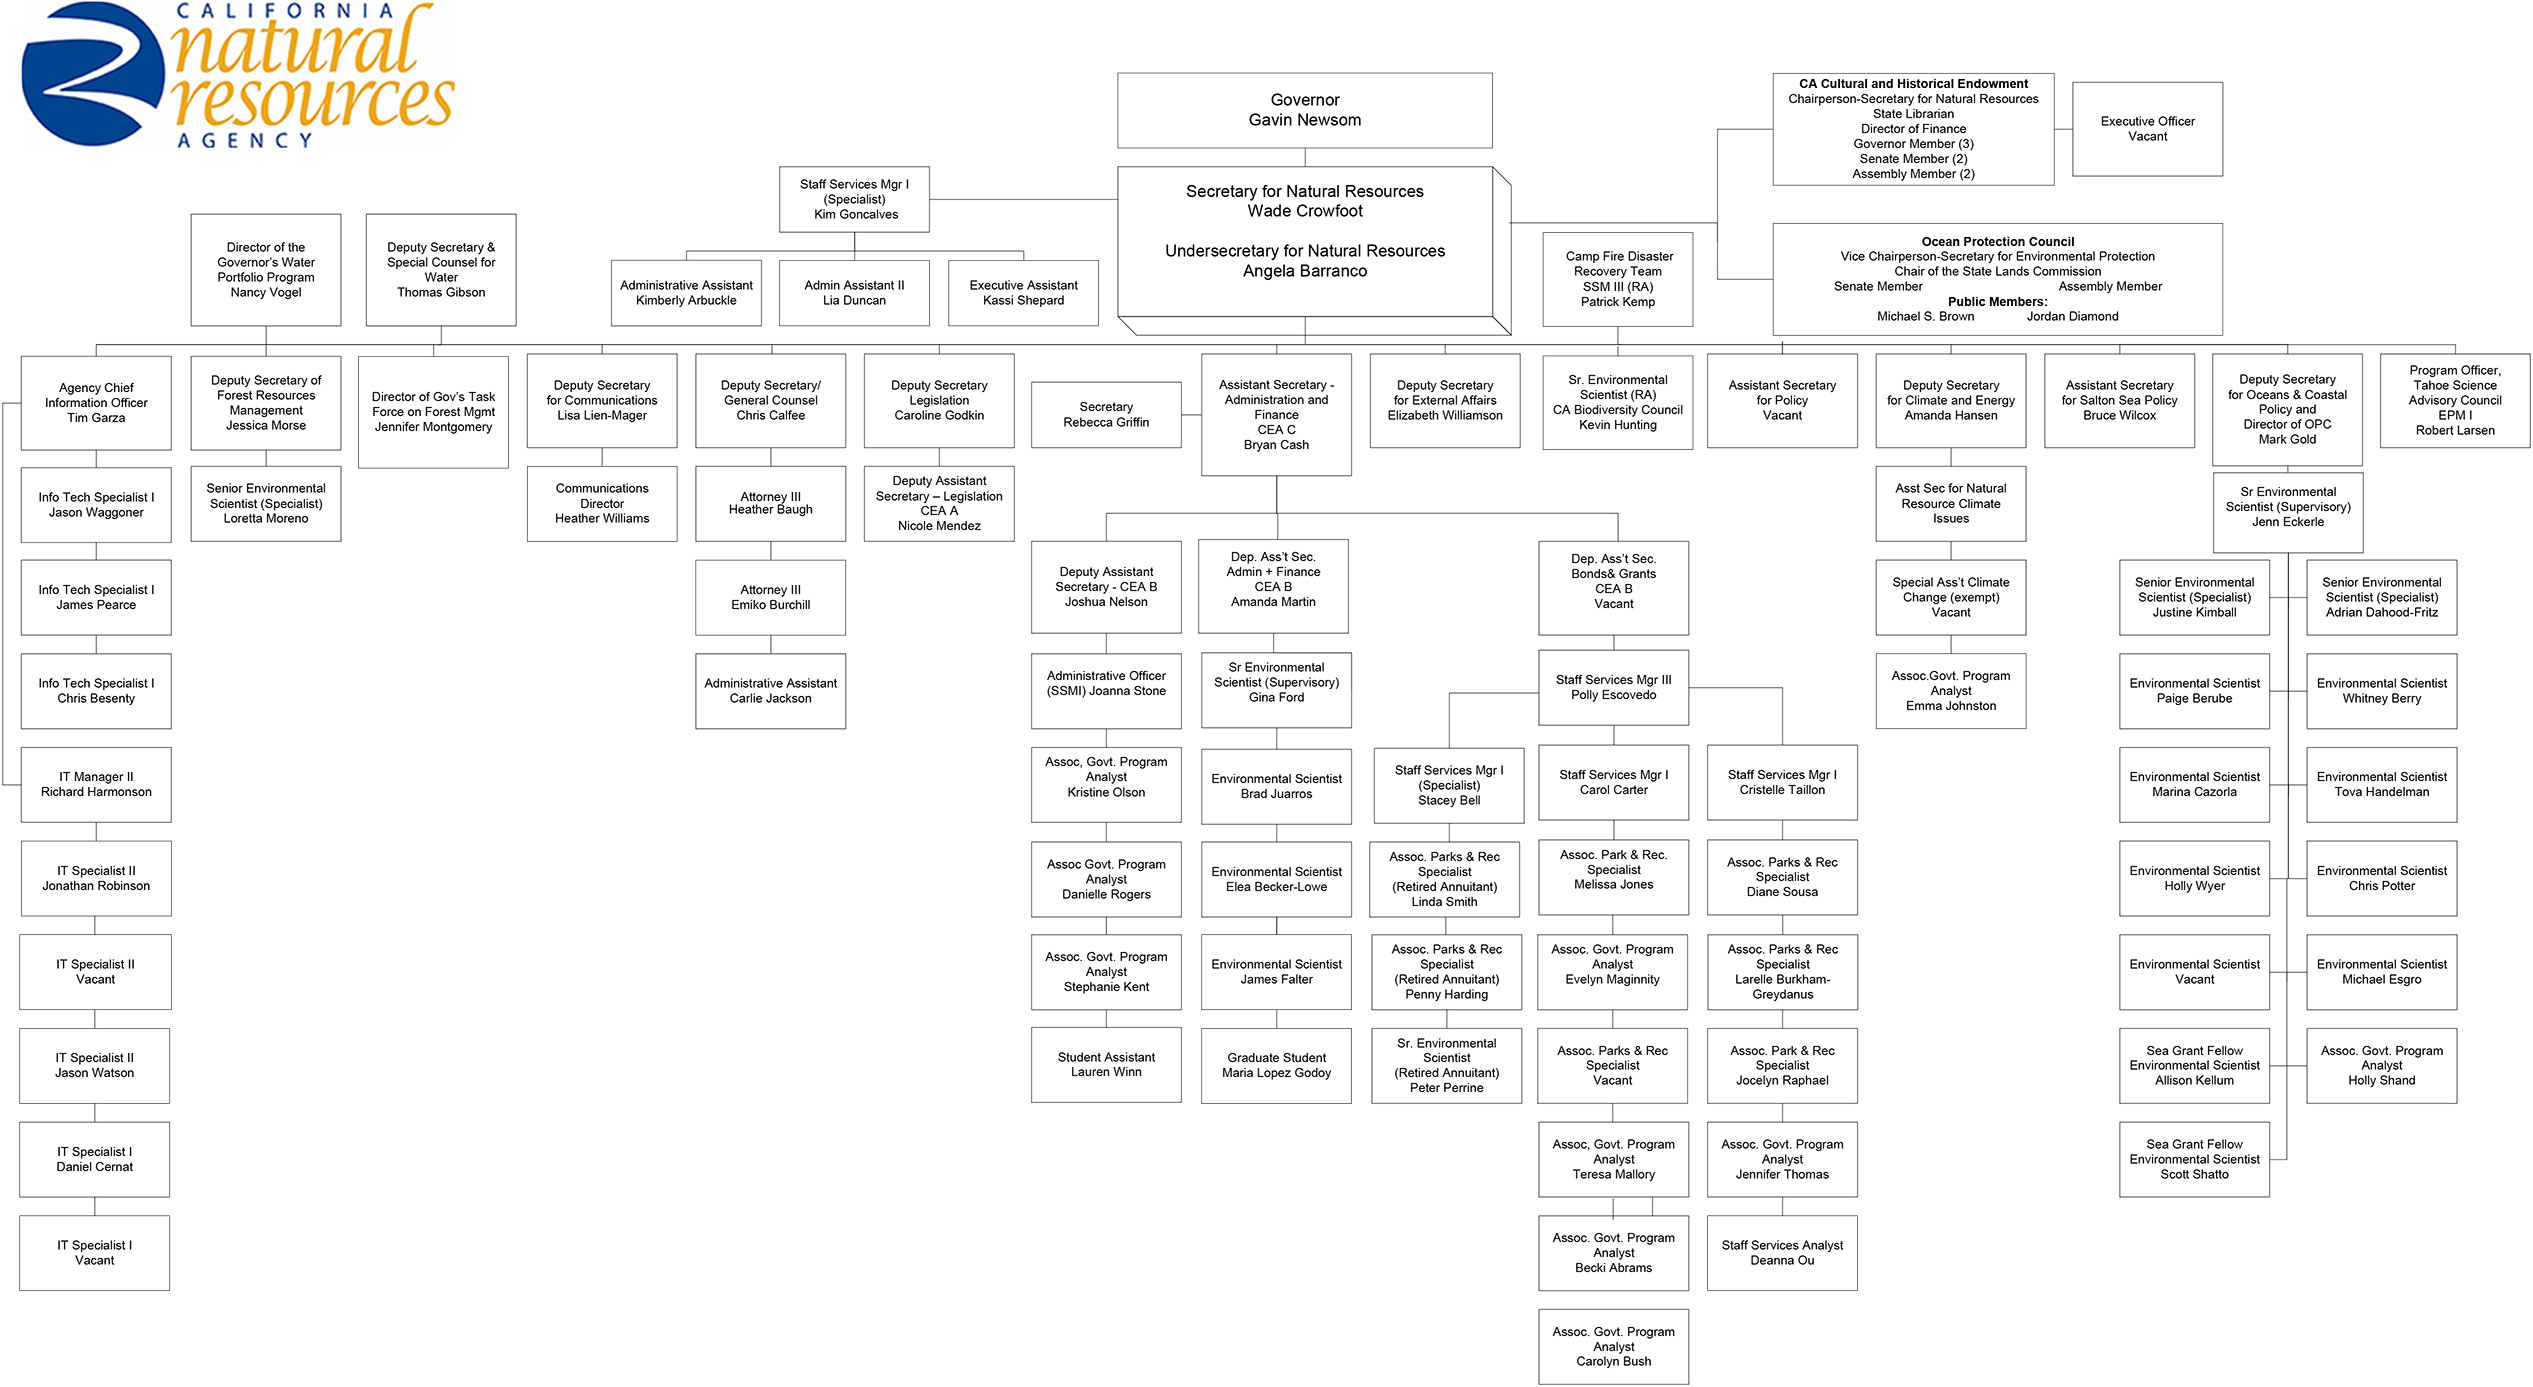 Image of Resources Agency Organizational Chart